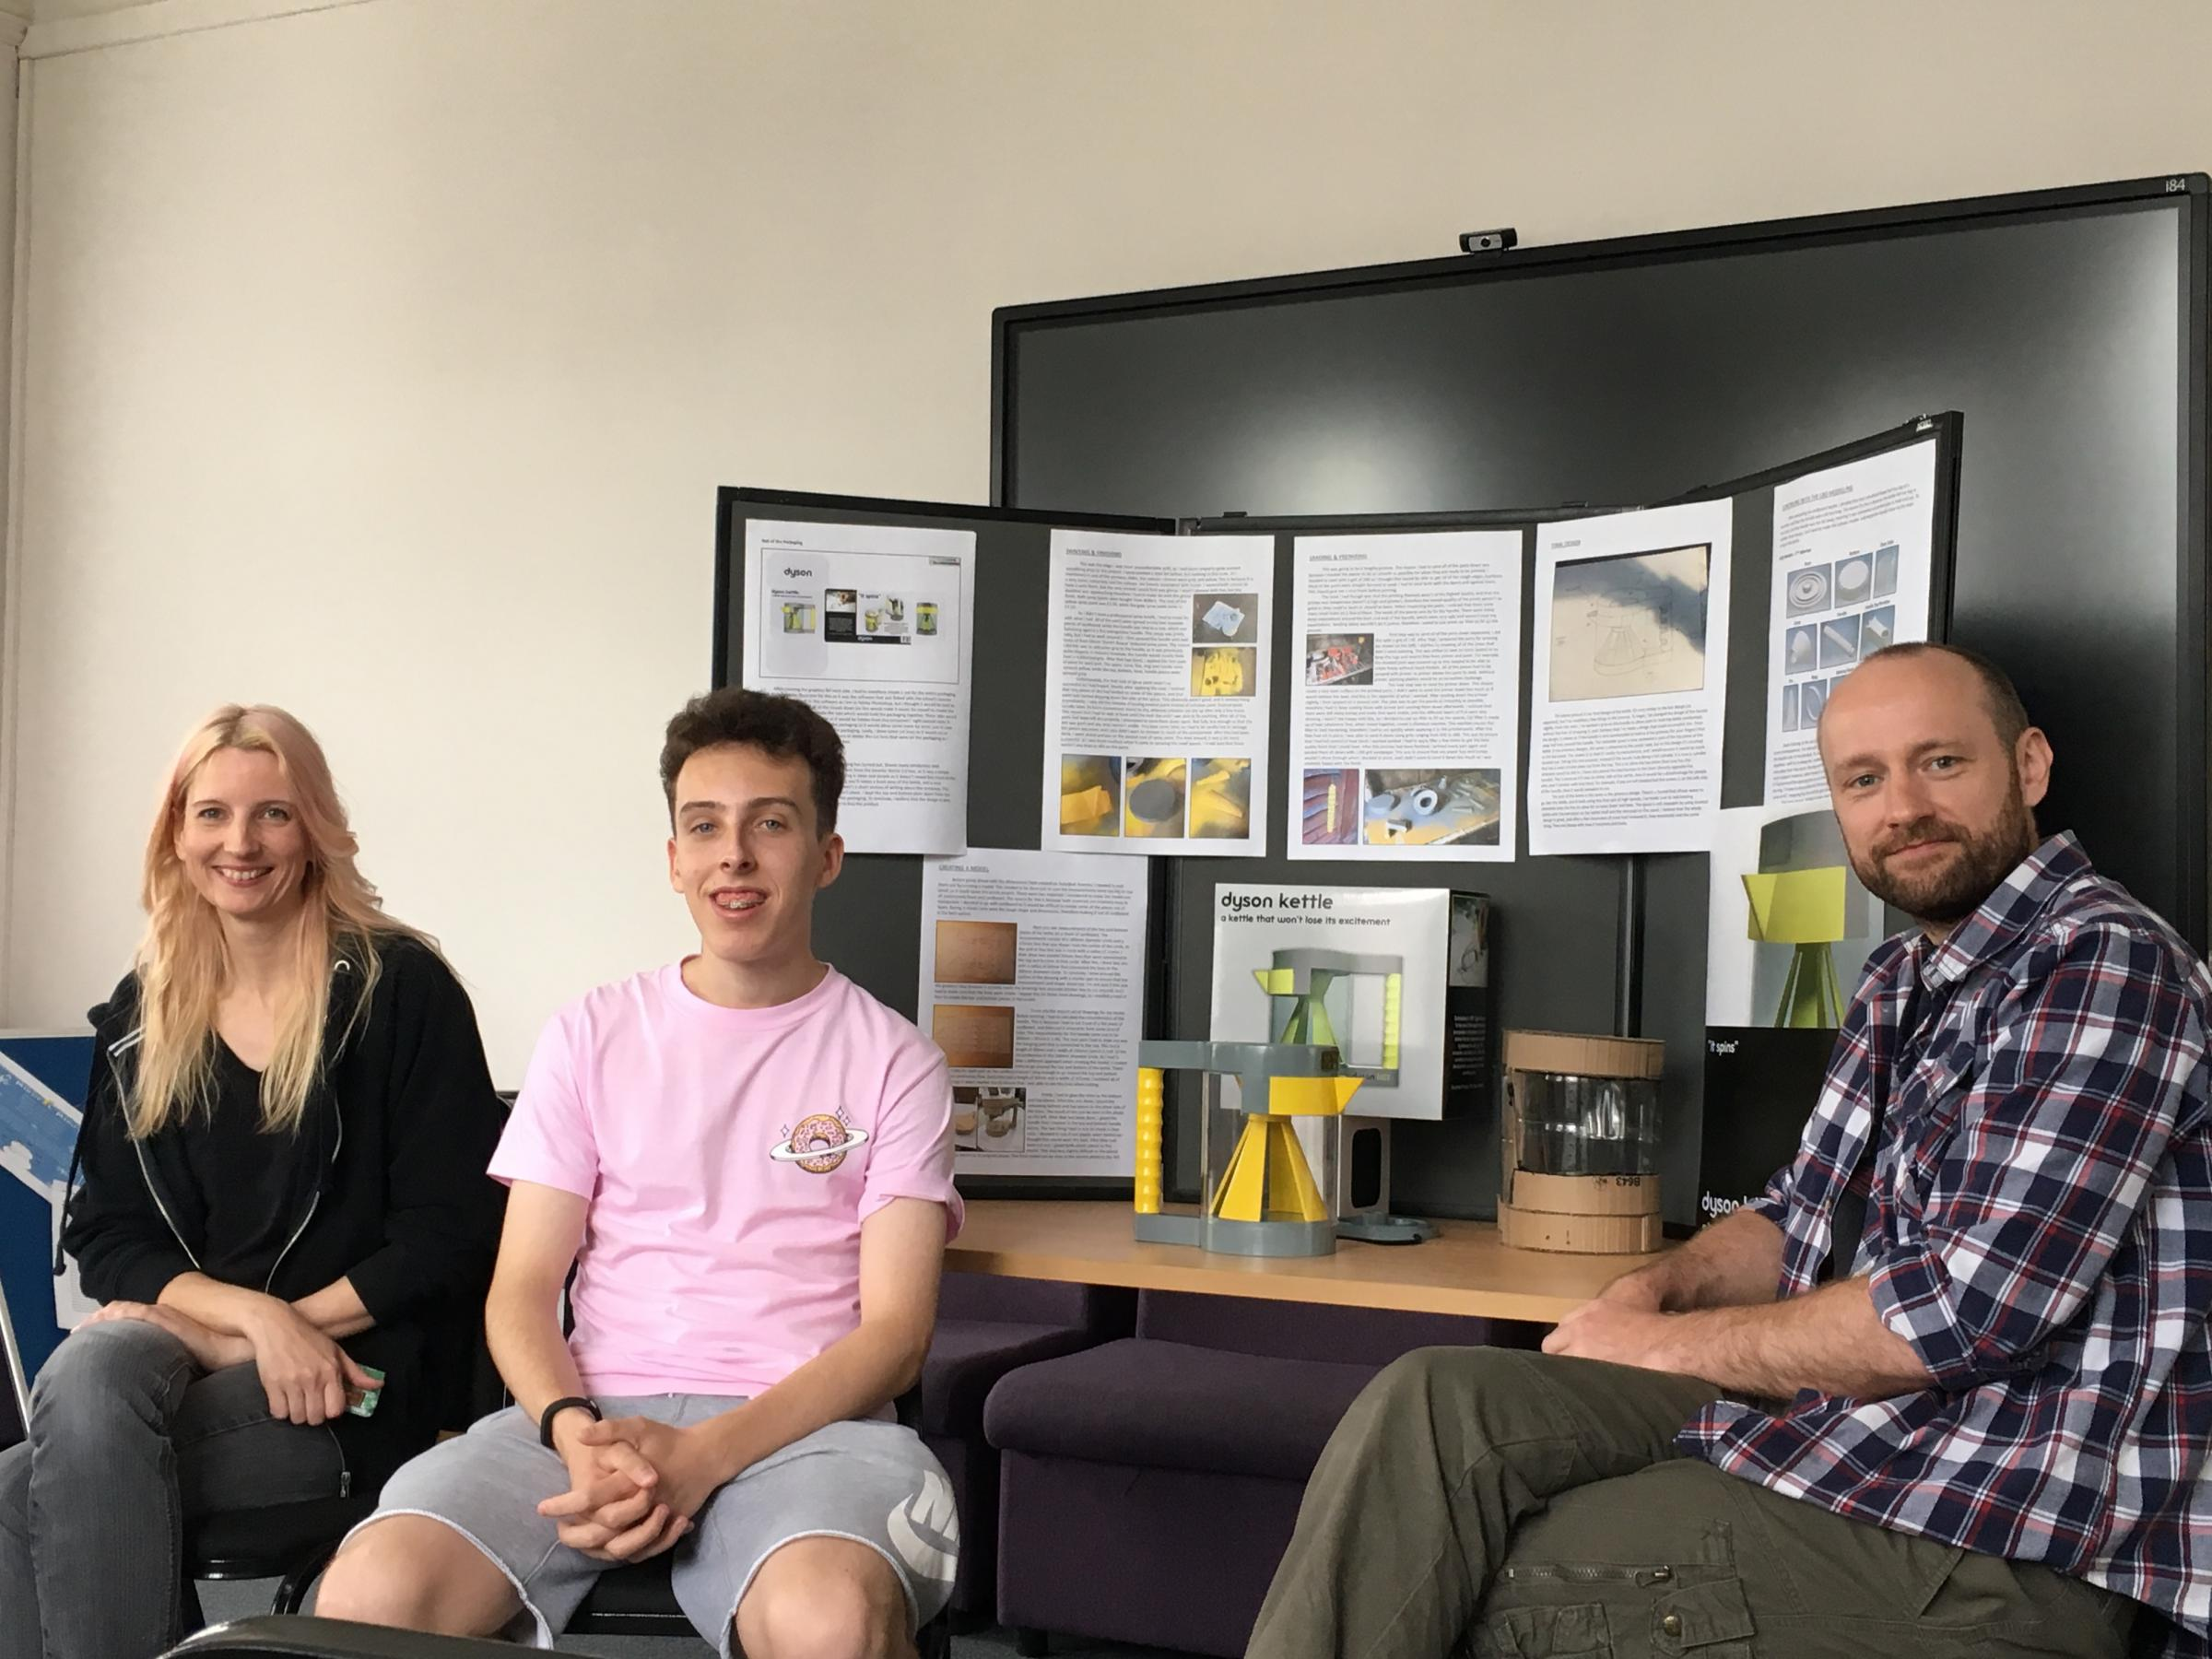 Benjamin Digby, with Rob Venus, Community Development Officer at Cwmaman Town Council, and Zoe Ross from Amman Valley Makerspace